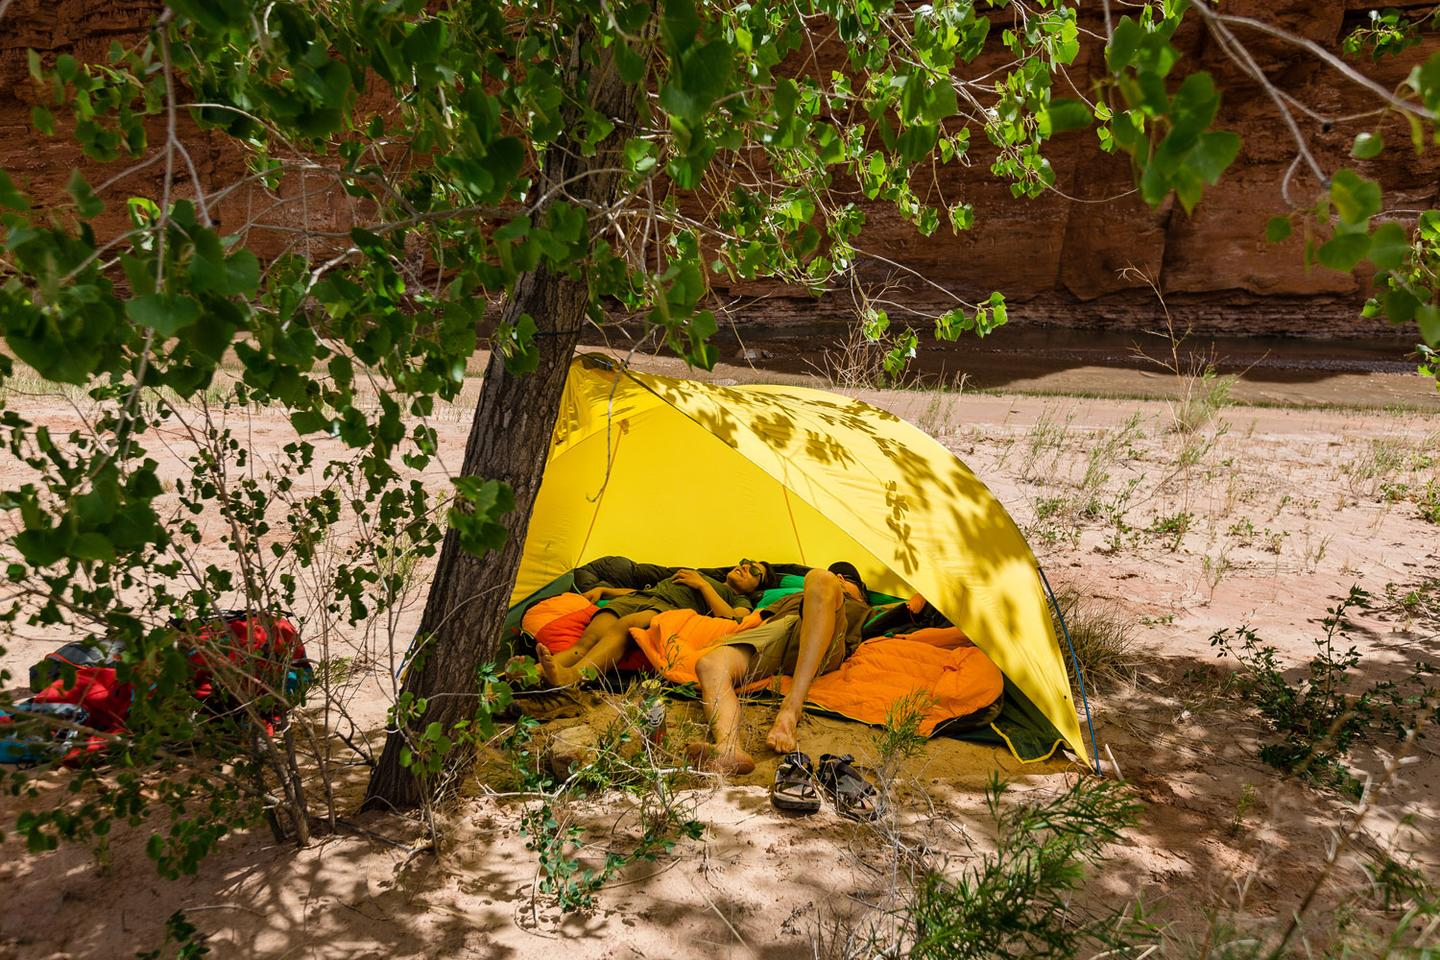 The alcove pitches with help from a tree or two trekking poles